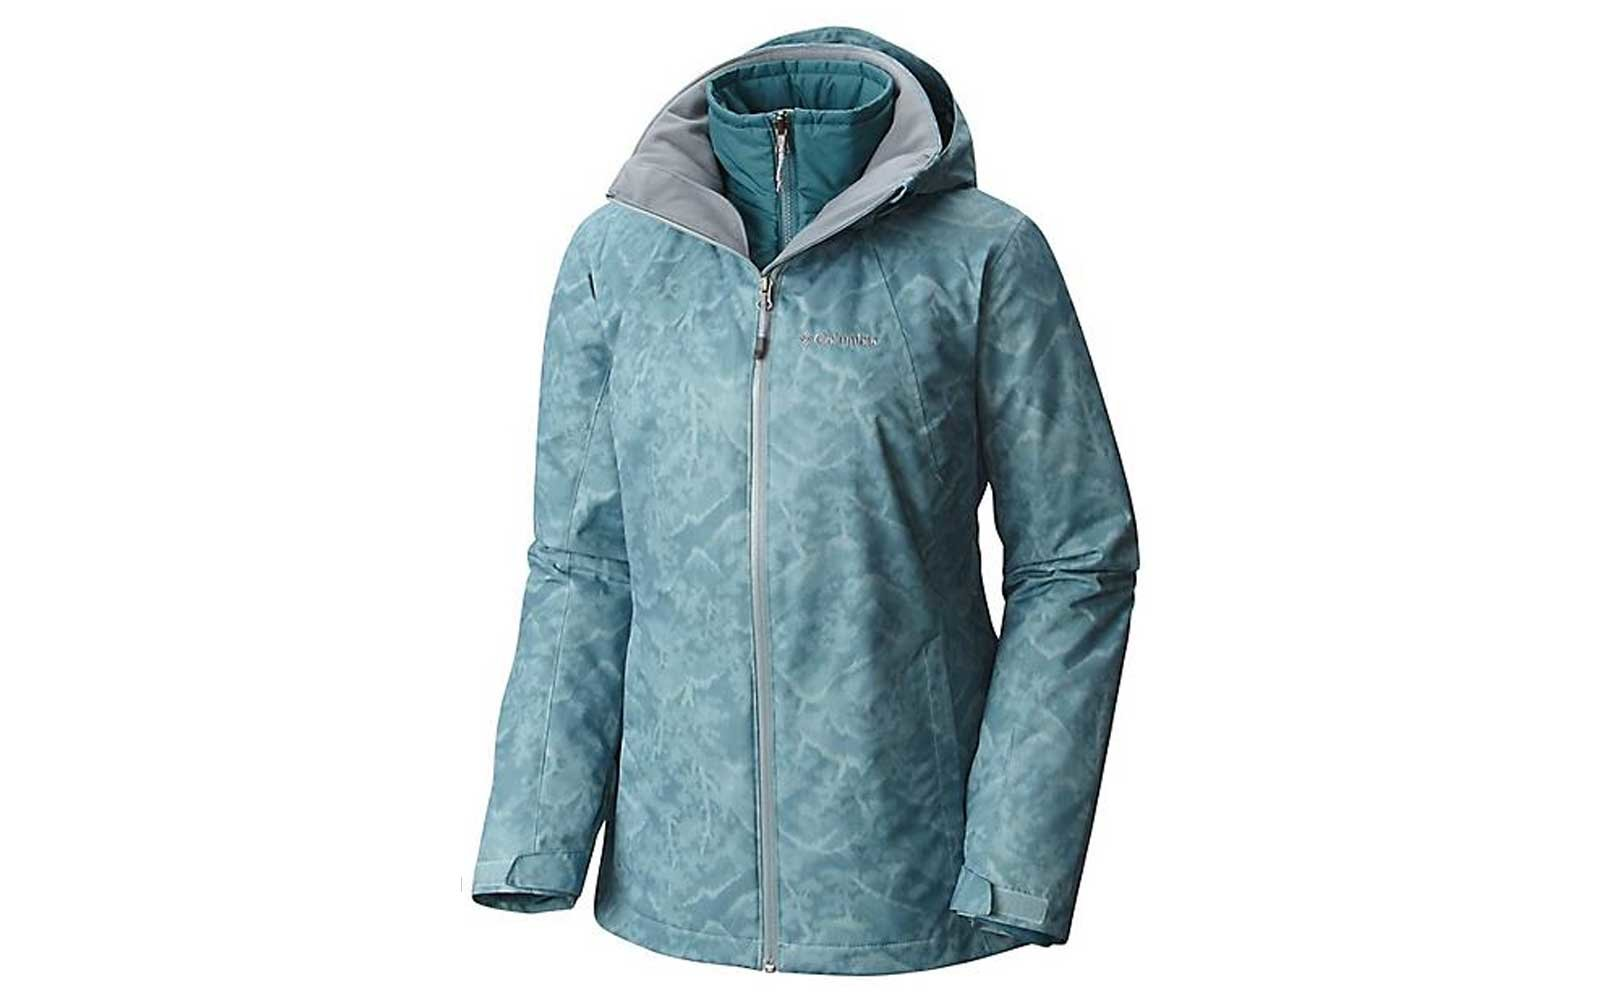 Blue Stone Print ski jacket by Columbia